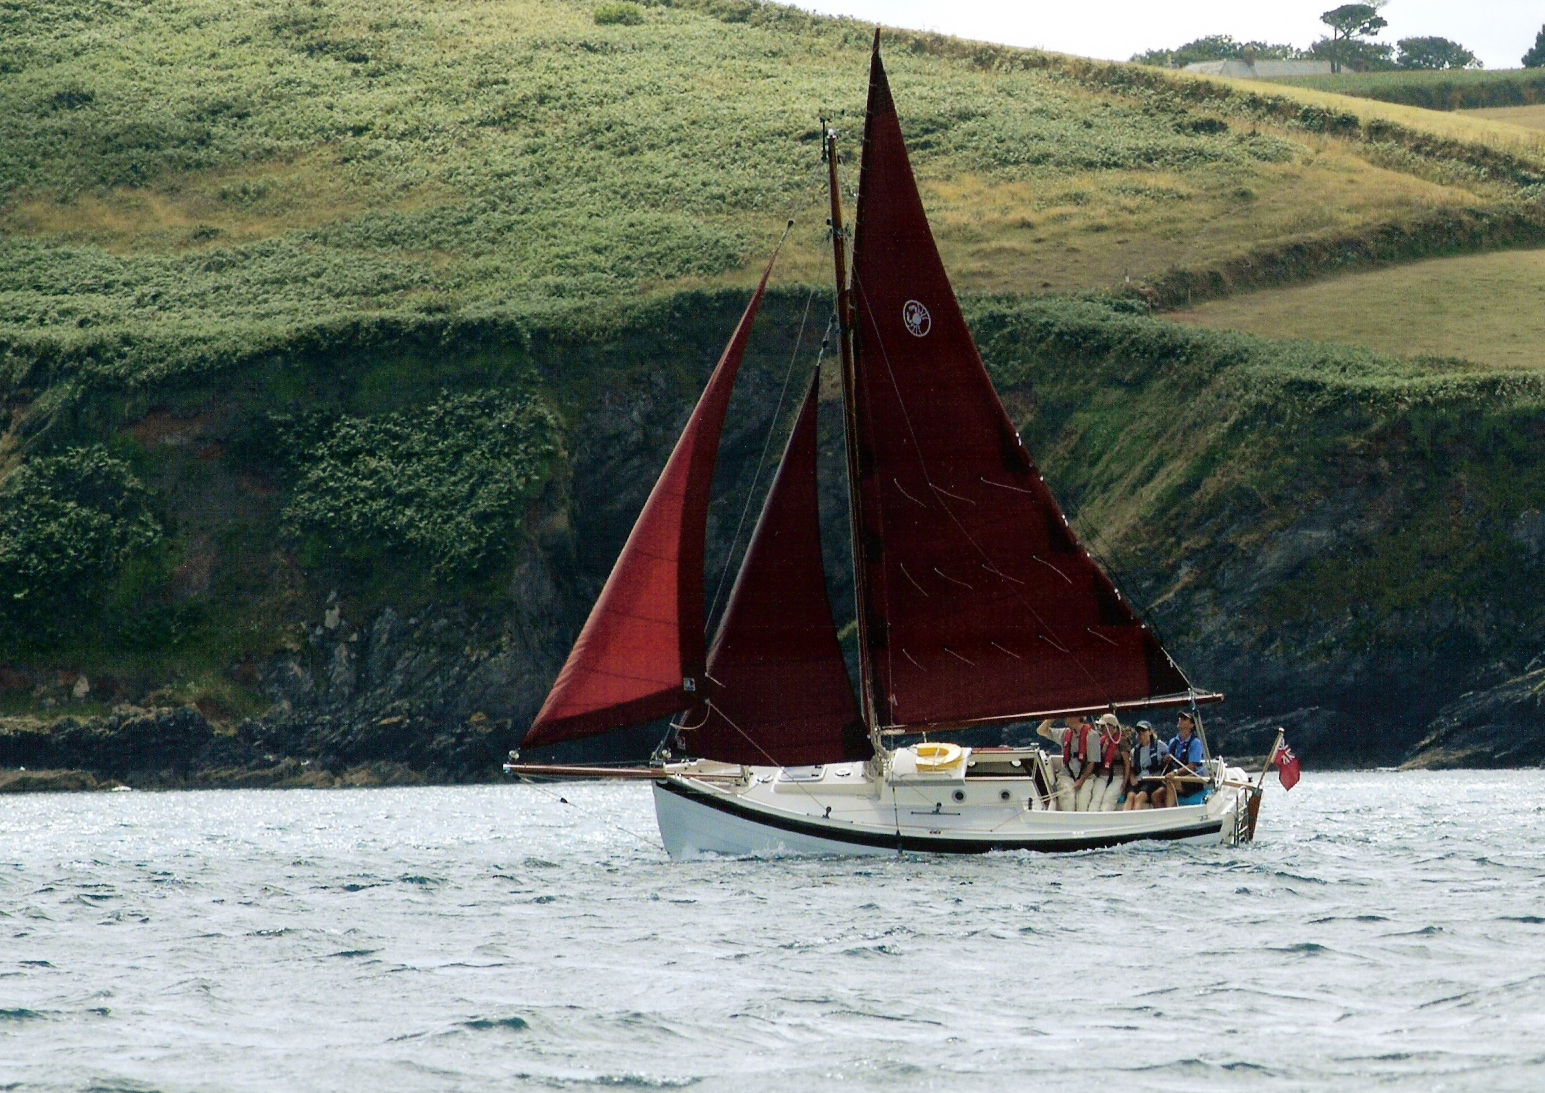 Cornish Crabber 22 Cornish Crabber 22 for sale